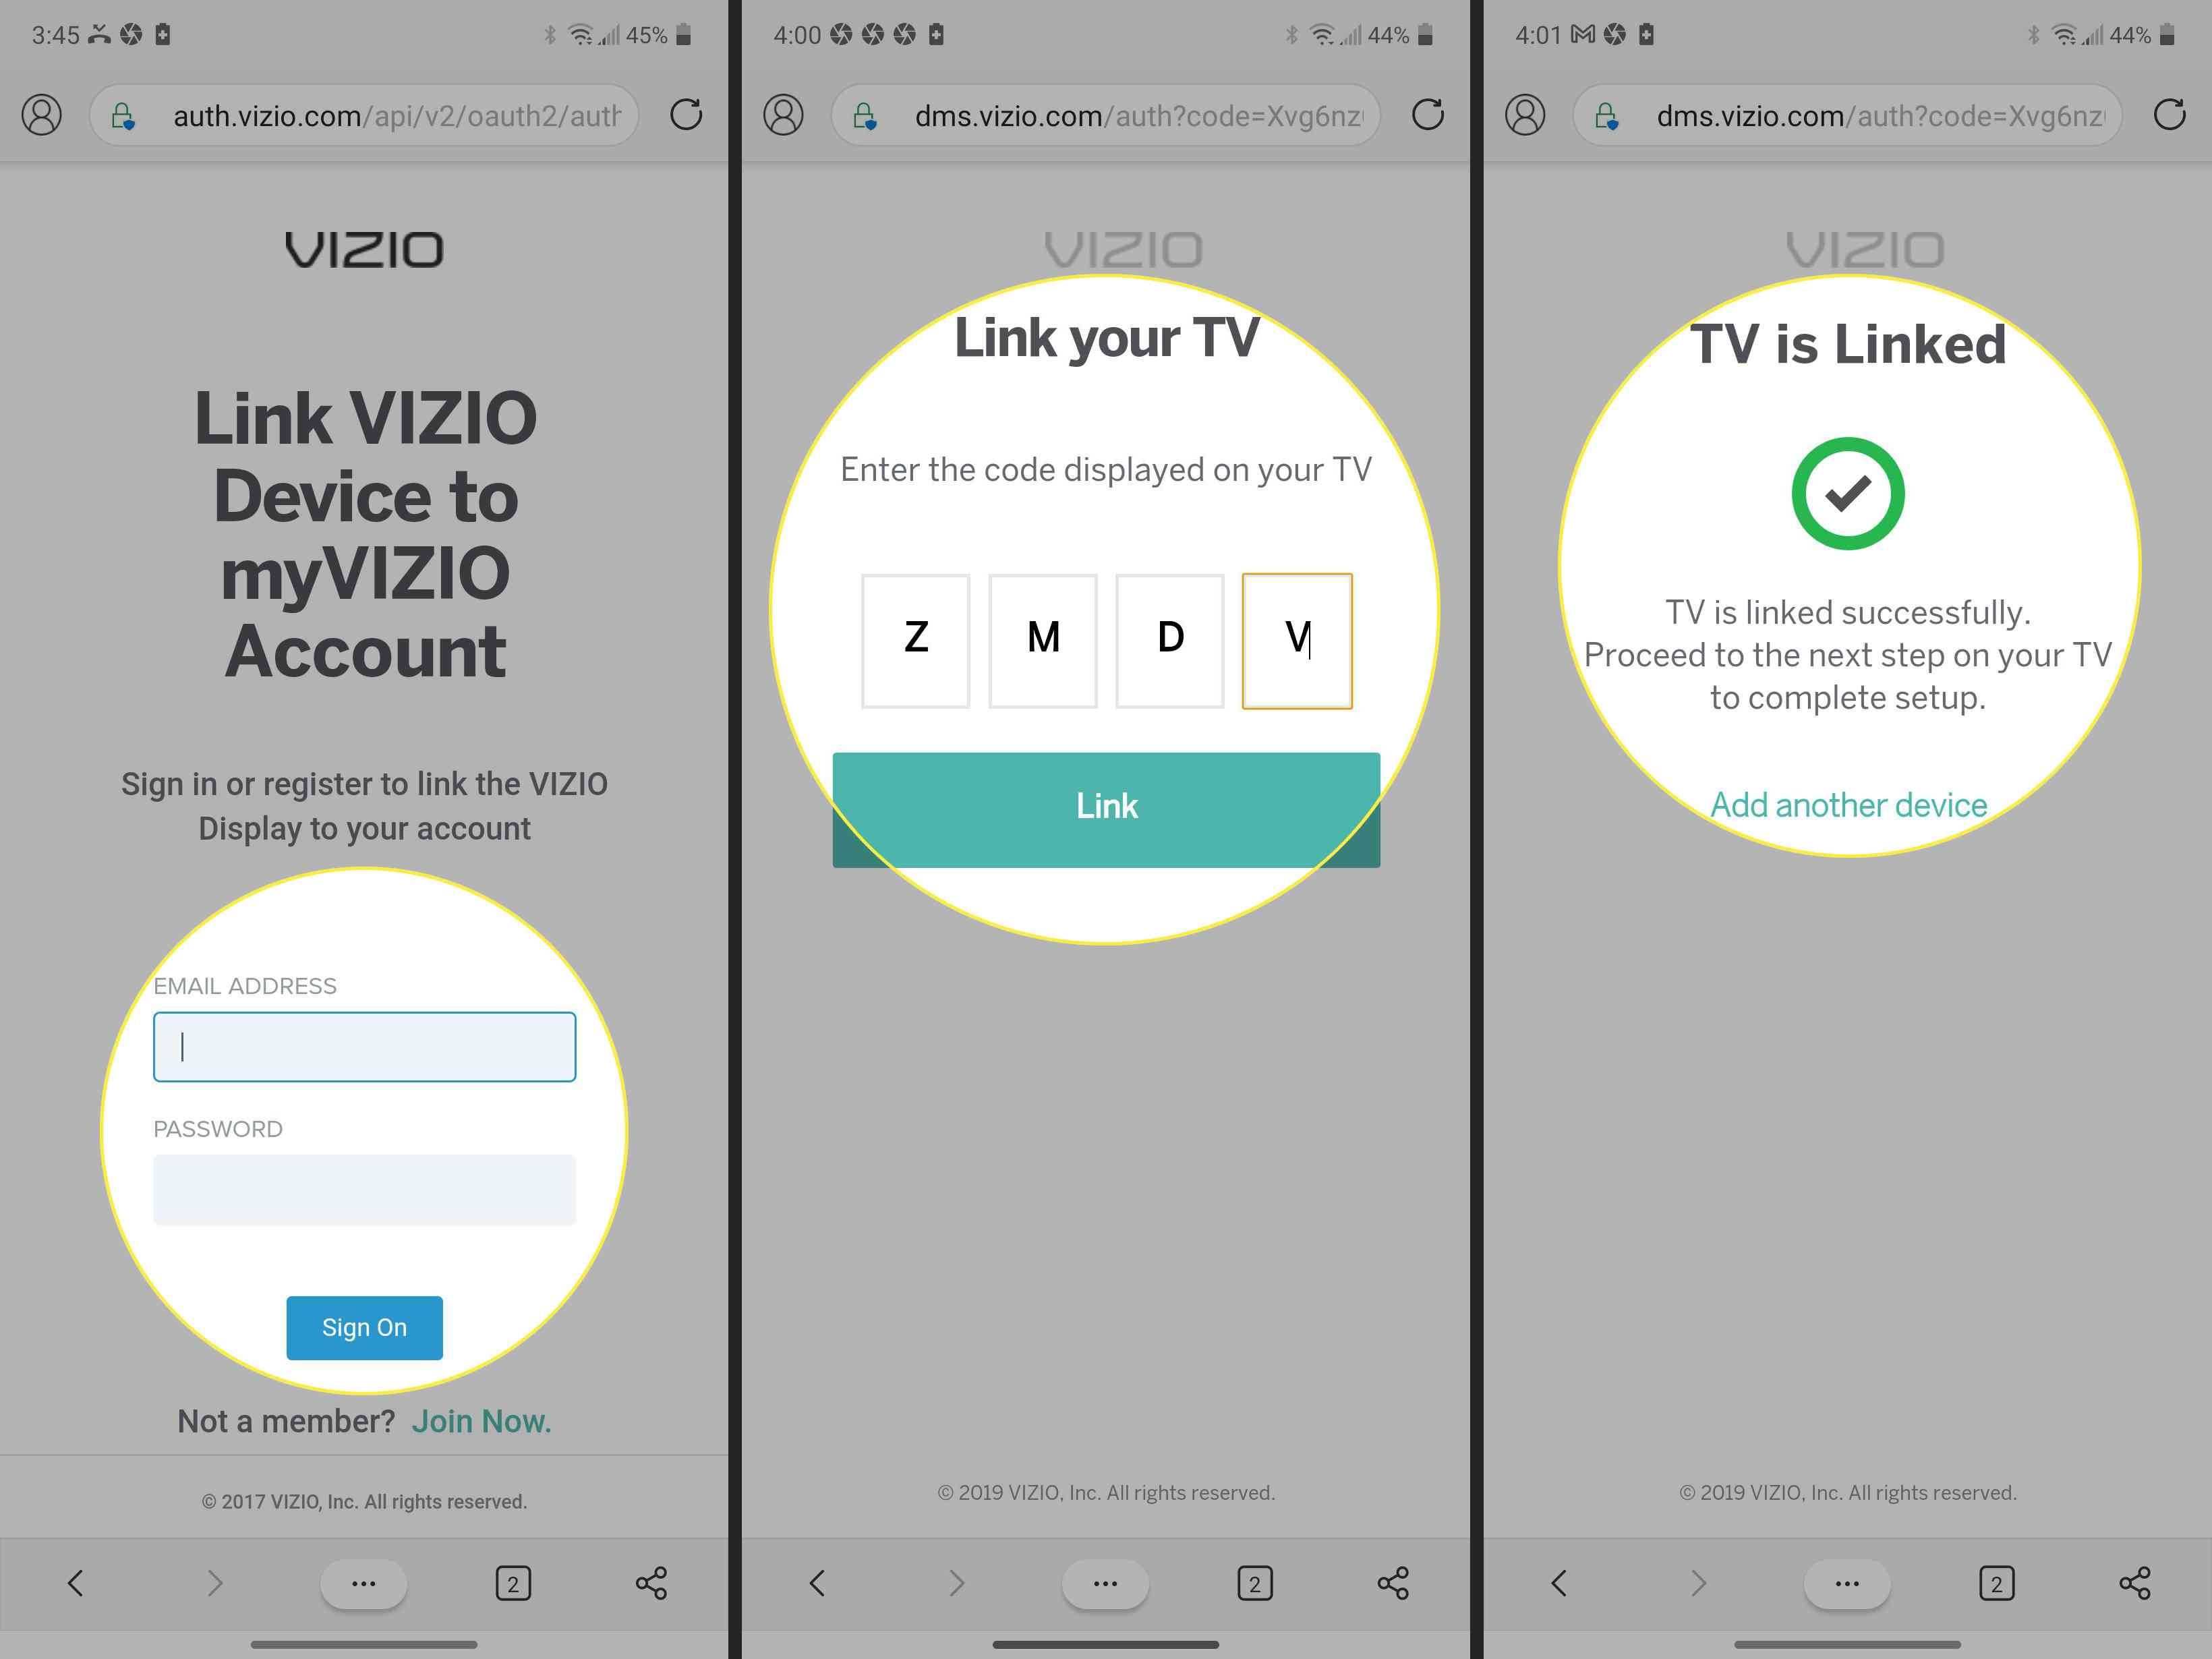 Vizio Smart TV site with account linking info, link code, and confirmation message highlighted